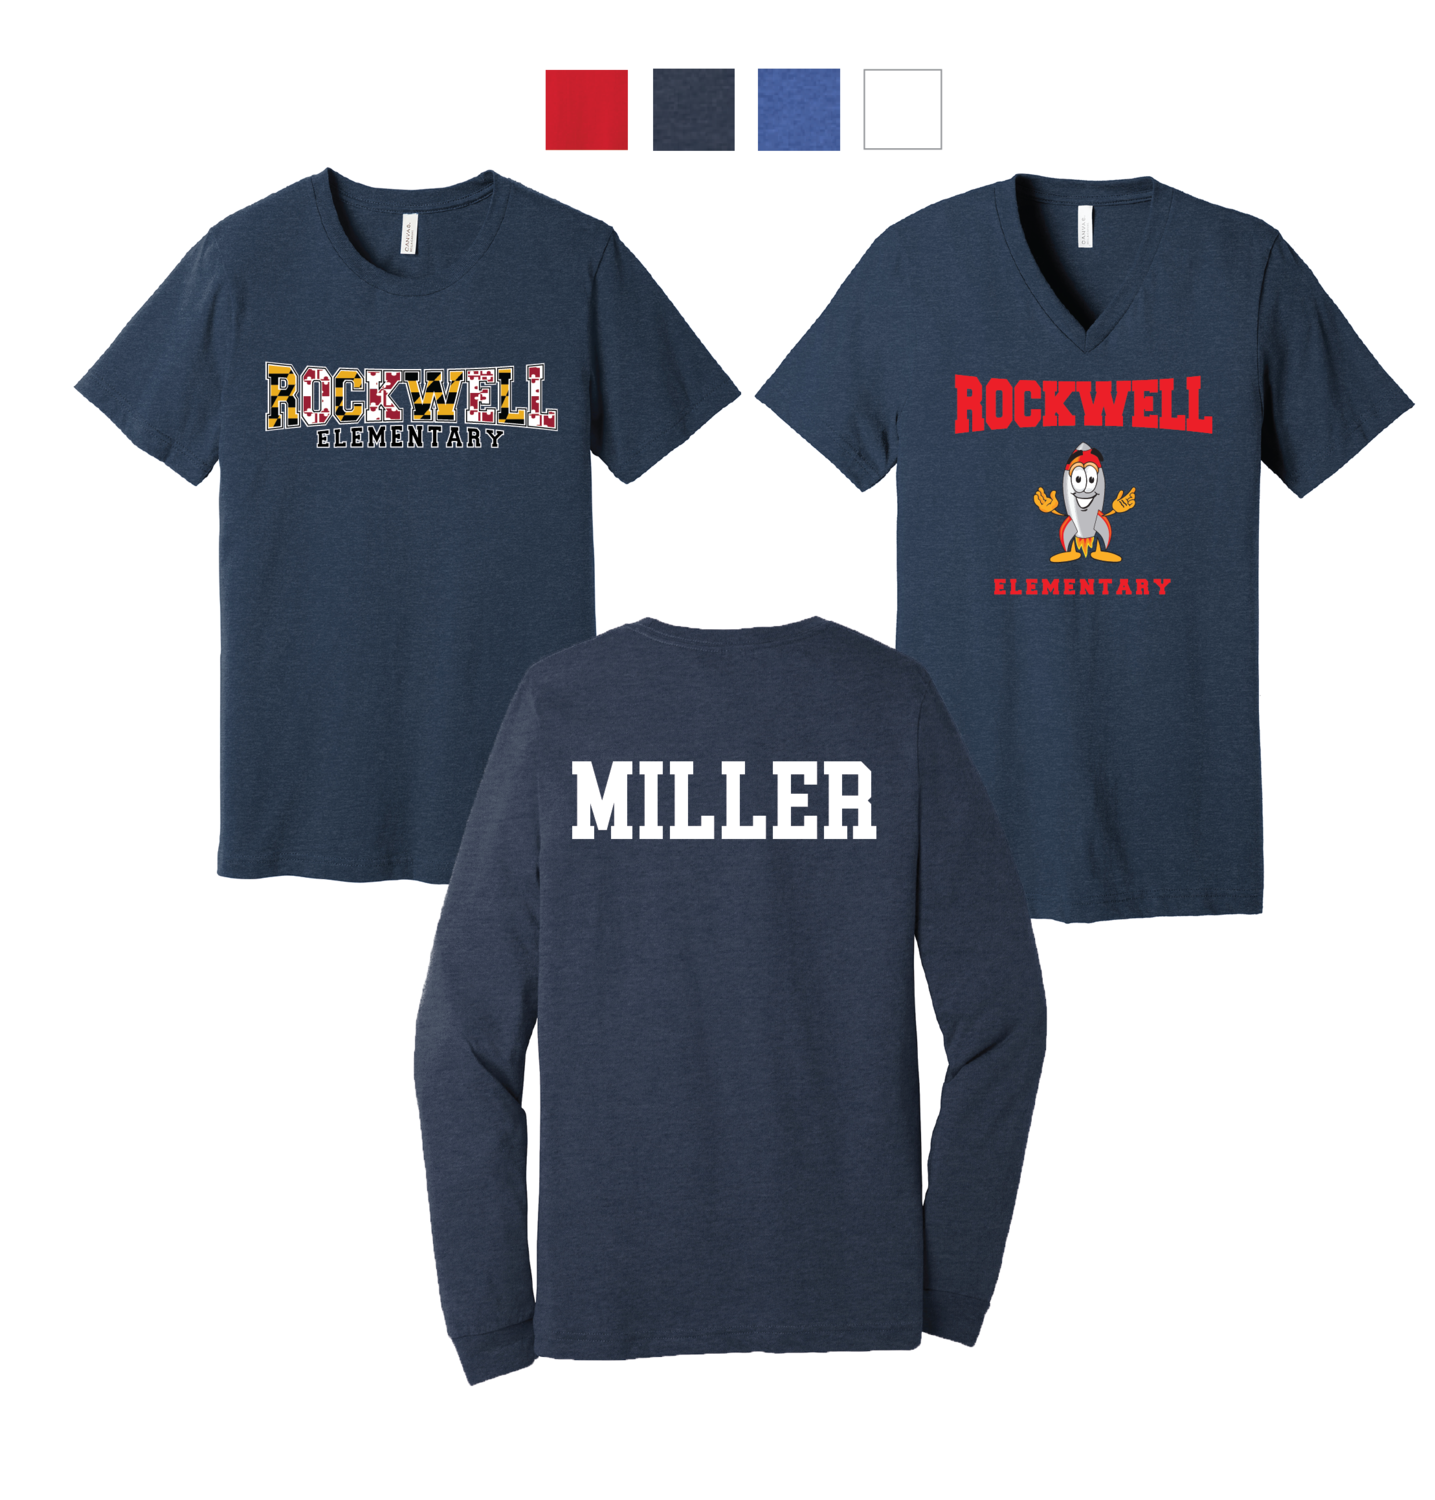 Rockwell Elementary Tees